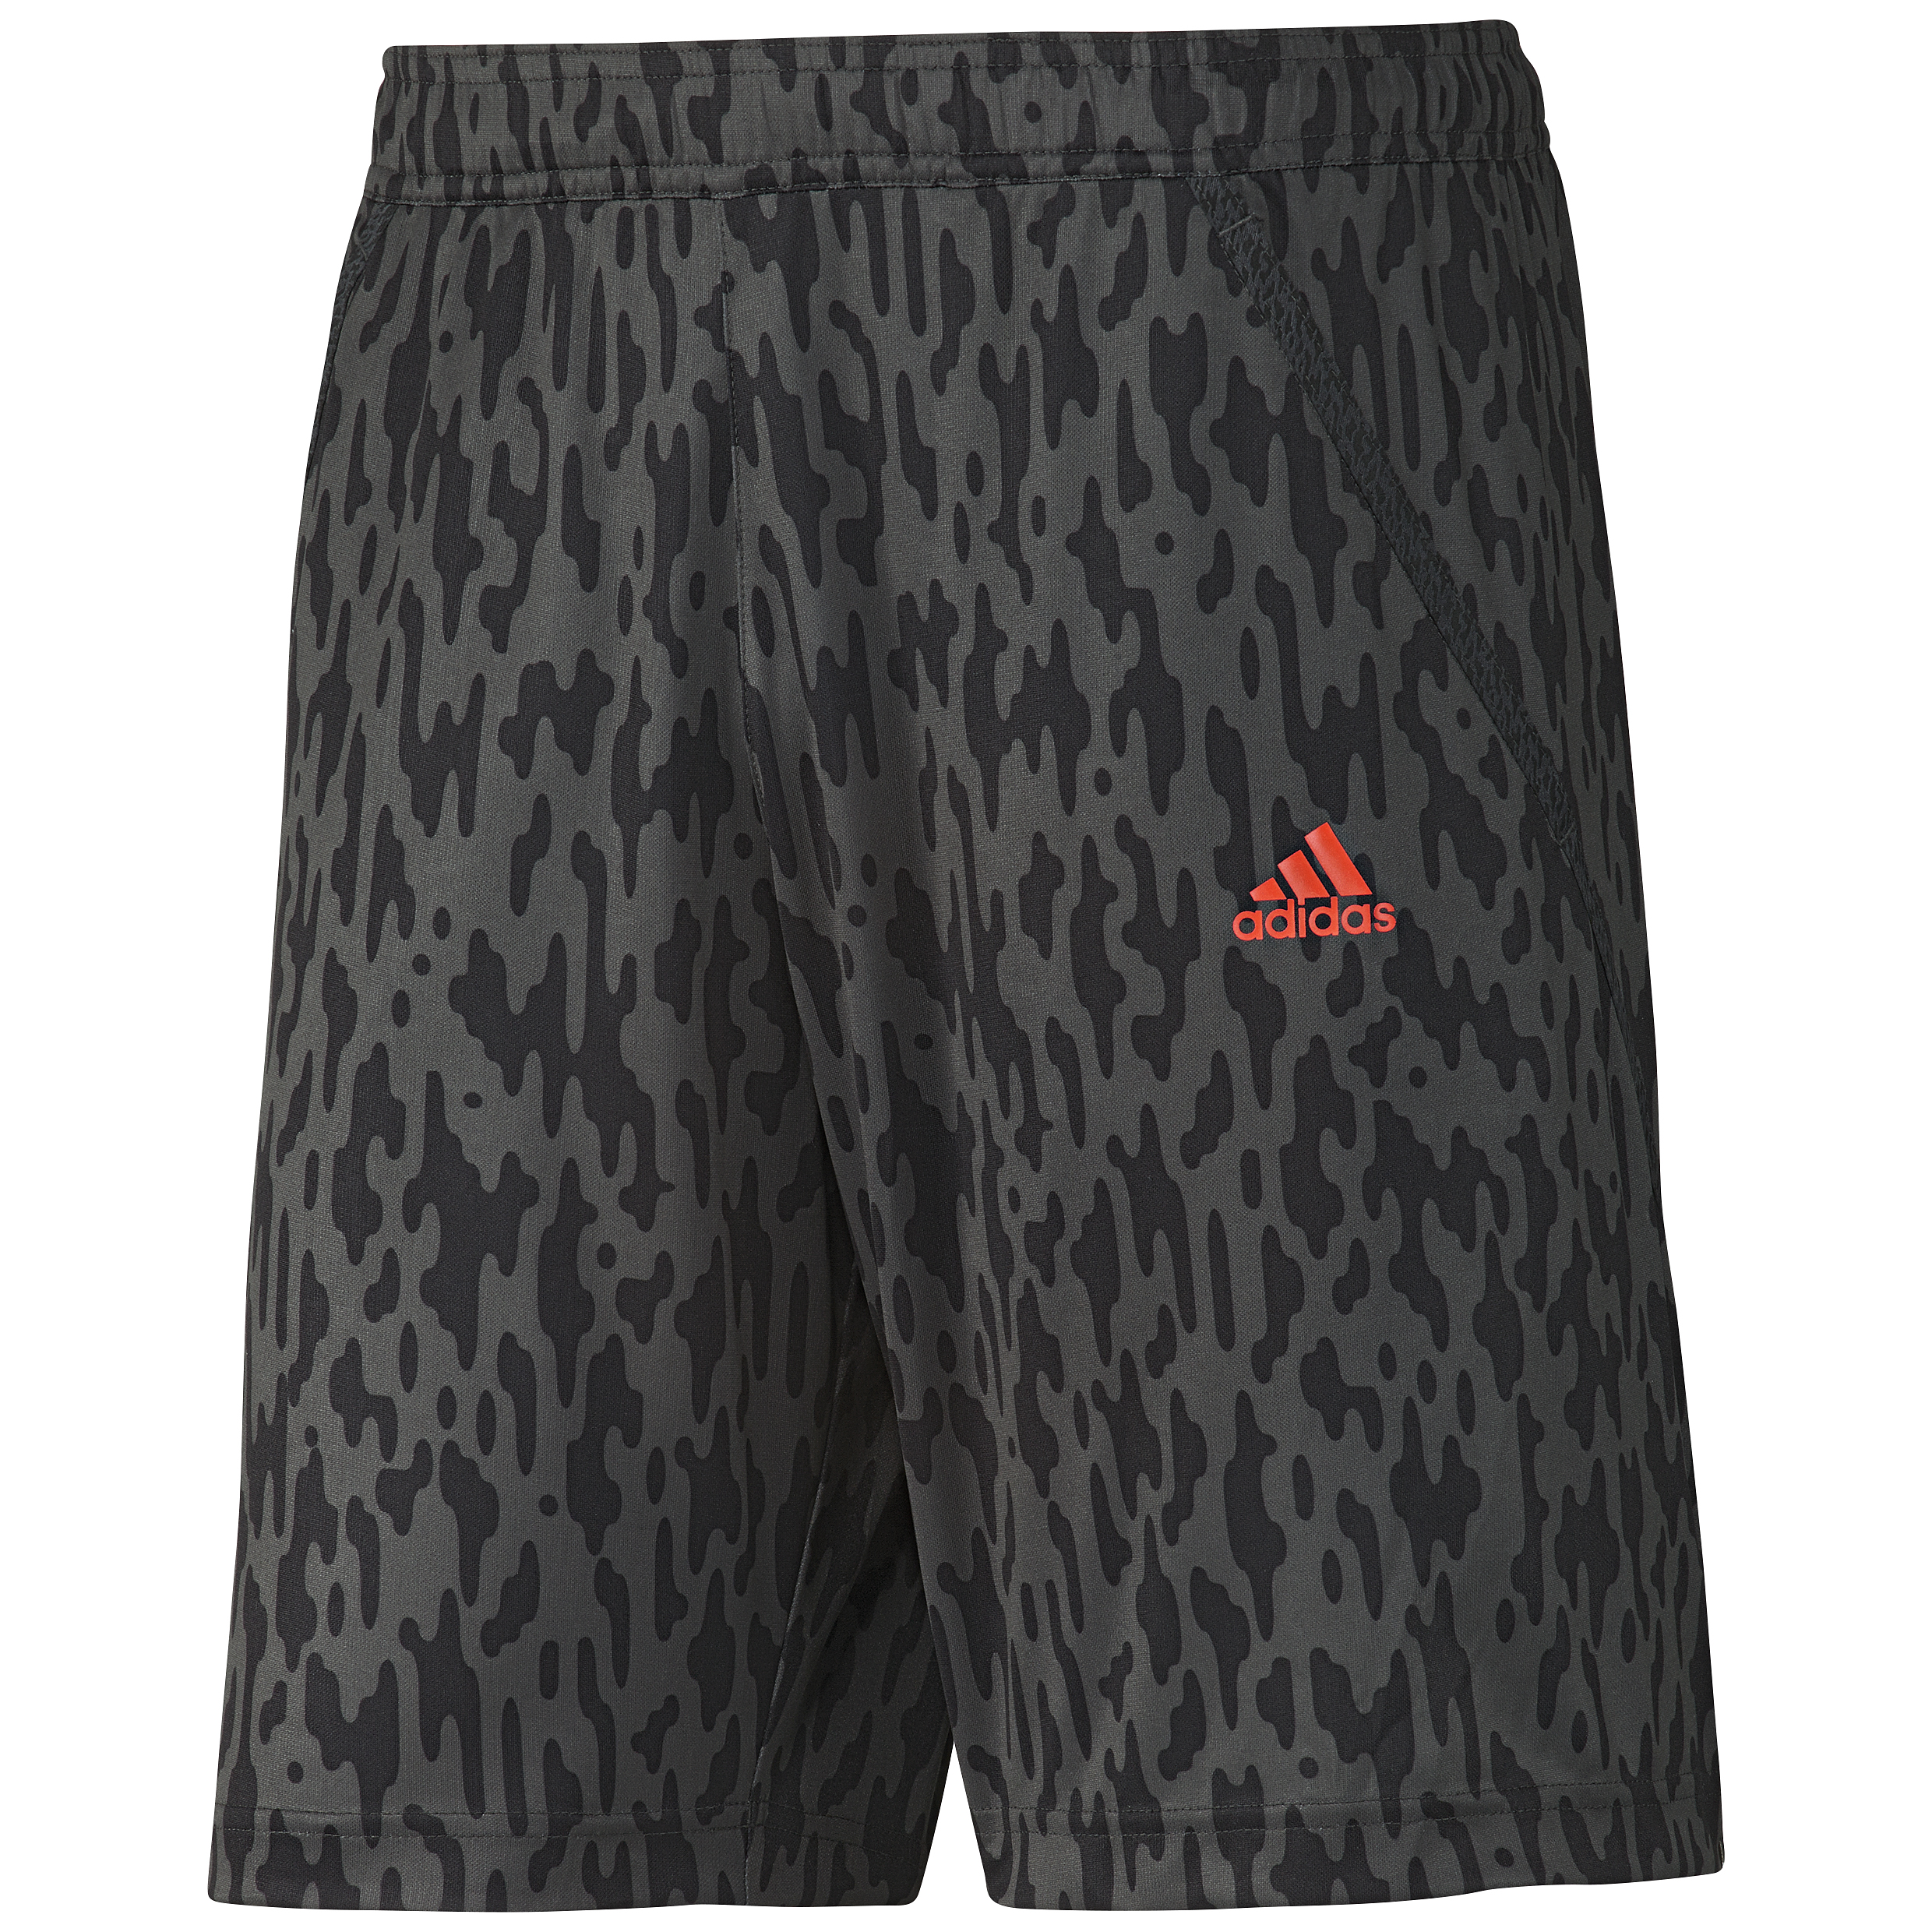 Adidas World Cup Short Dk Grey